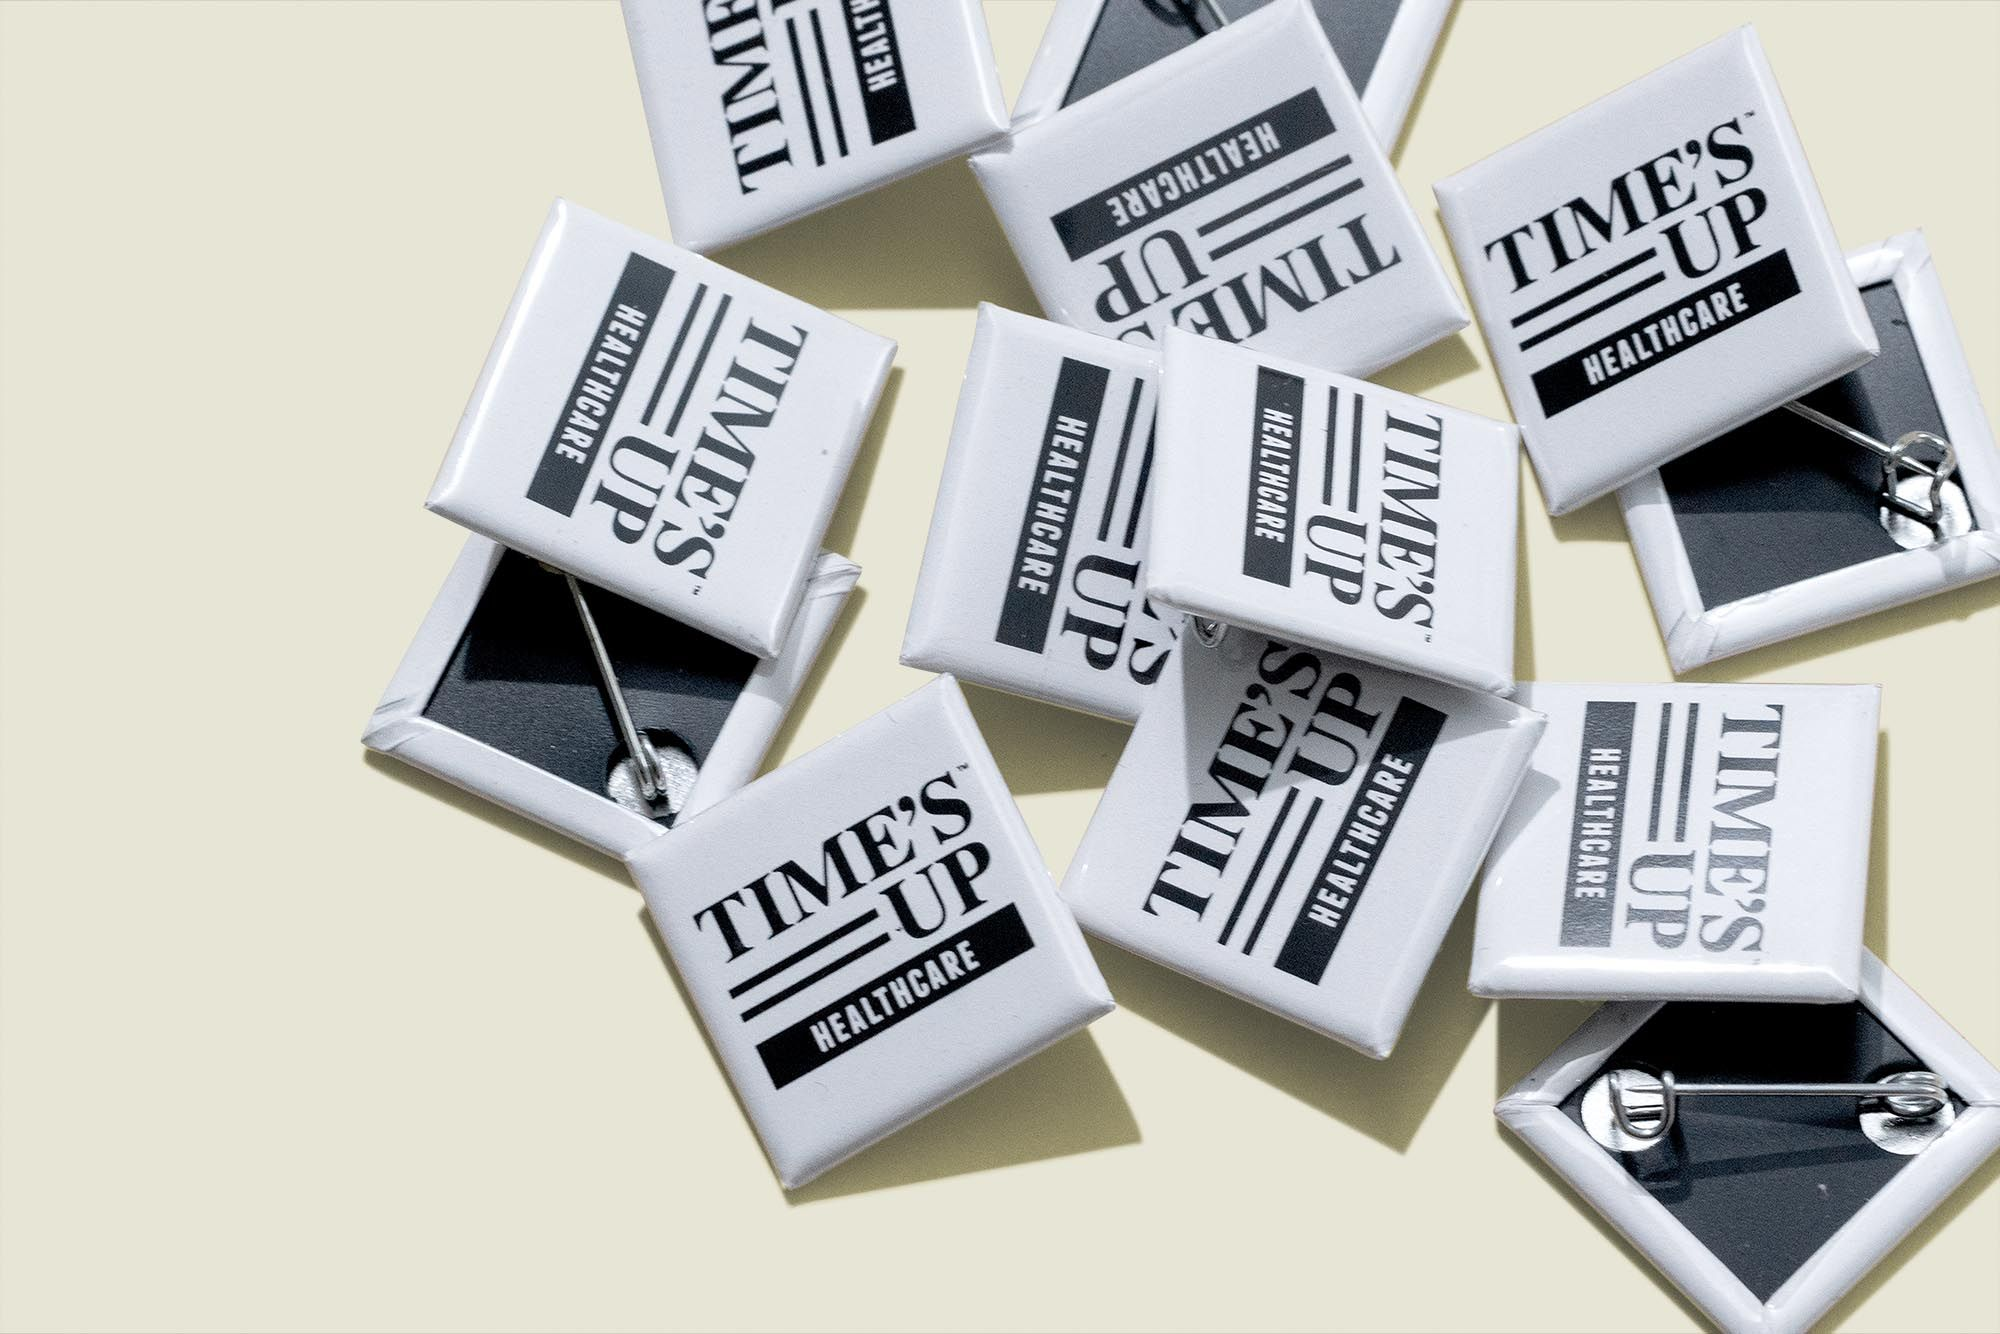 Square pin buttons